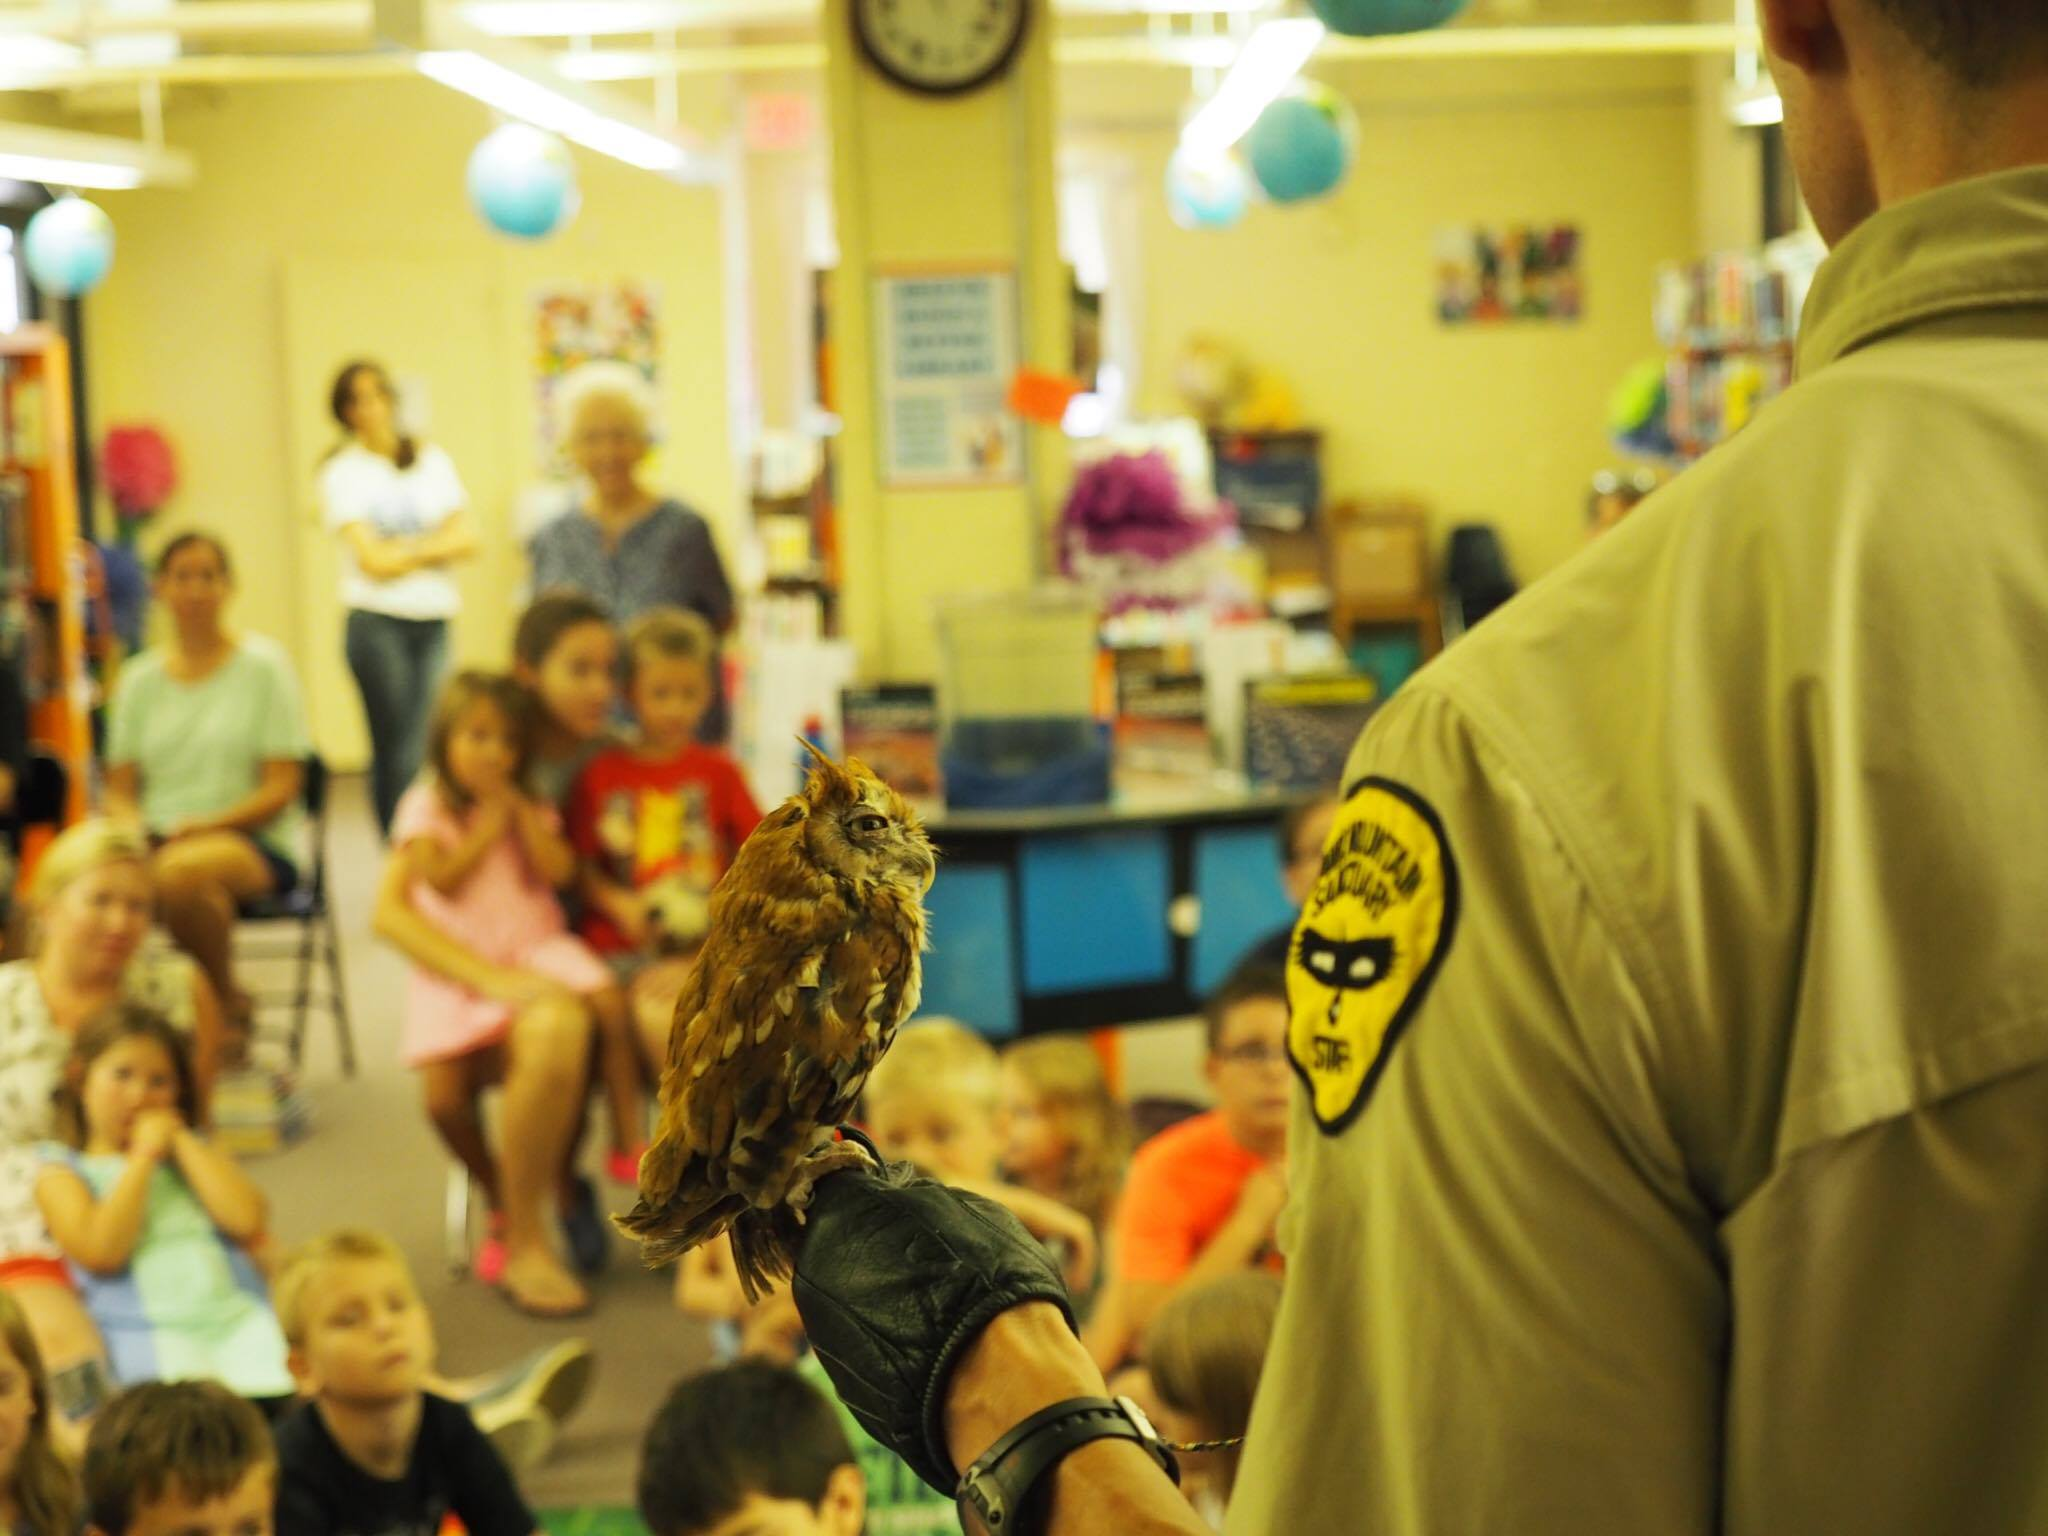 Hawk Mountain educator Adam Carter presenting a live raptor program at the Pottstown Public Library, featuring a red-morph eastern screech owl.